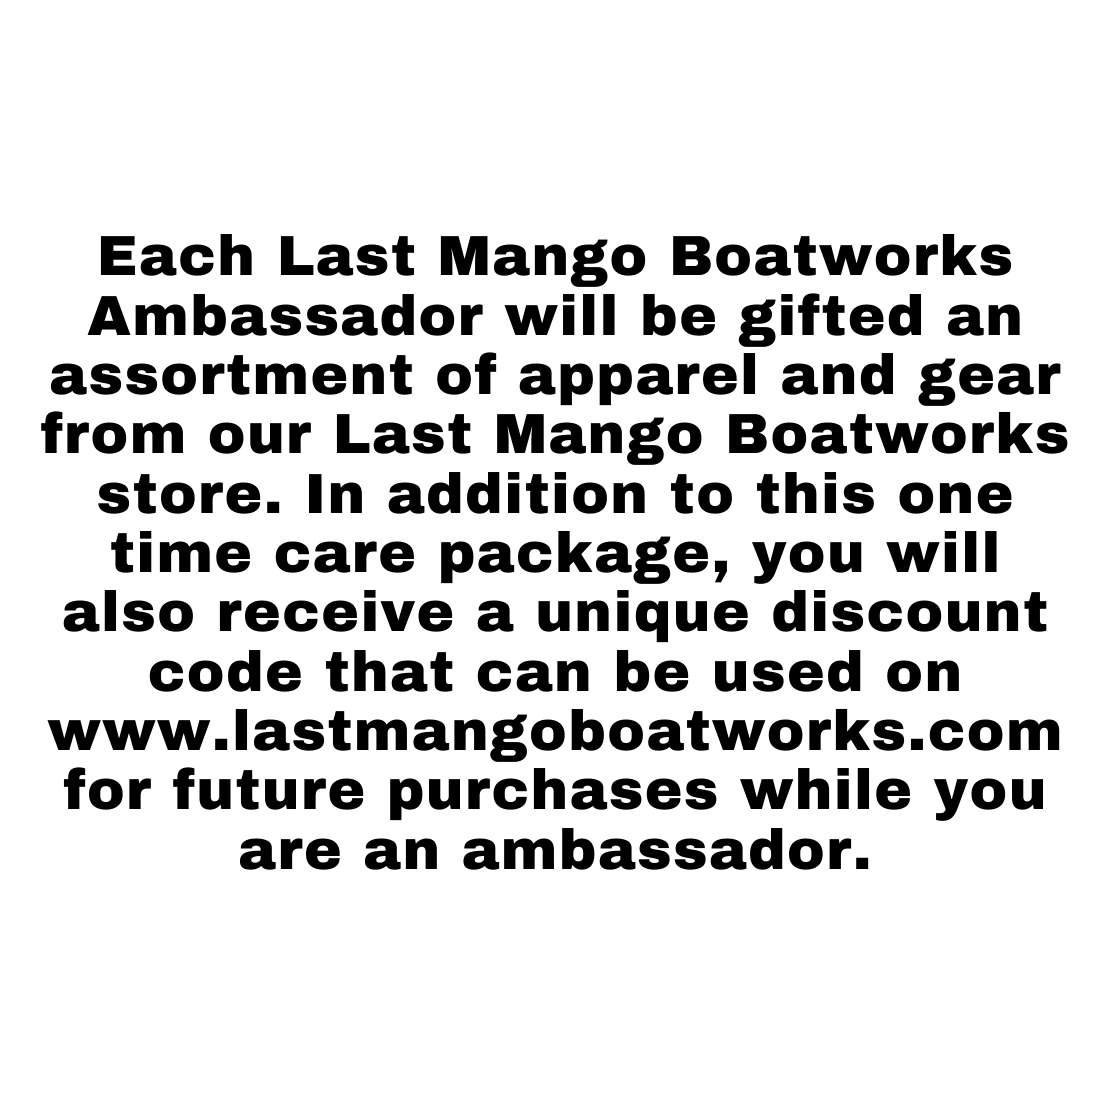 Each Last Mango Boatworks Ambassador will be gifted an assortment of apparel and gear from our last mango boatworks store. In addition to this one time care package, you will also receive a unique discount code that can be used on www.lastmangoboatworks.com for future purchases while you are an ambassador.